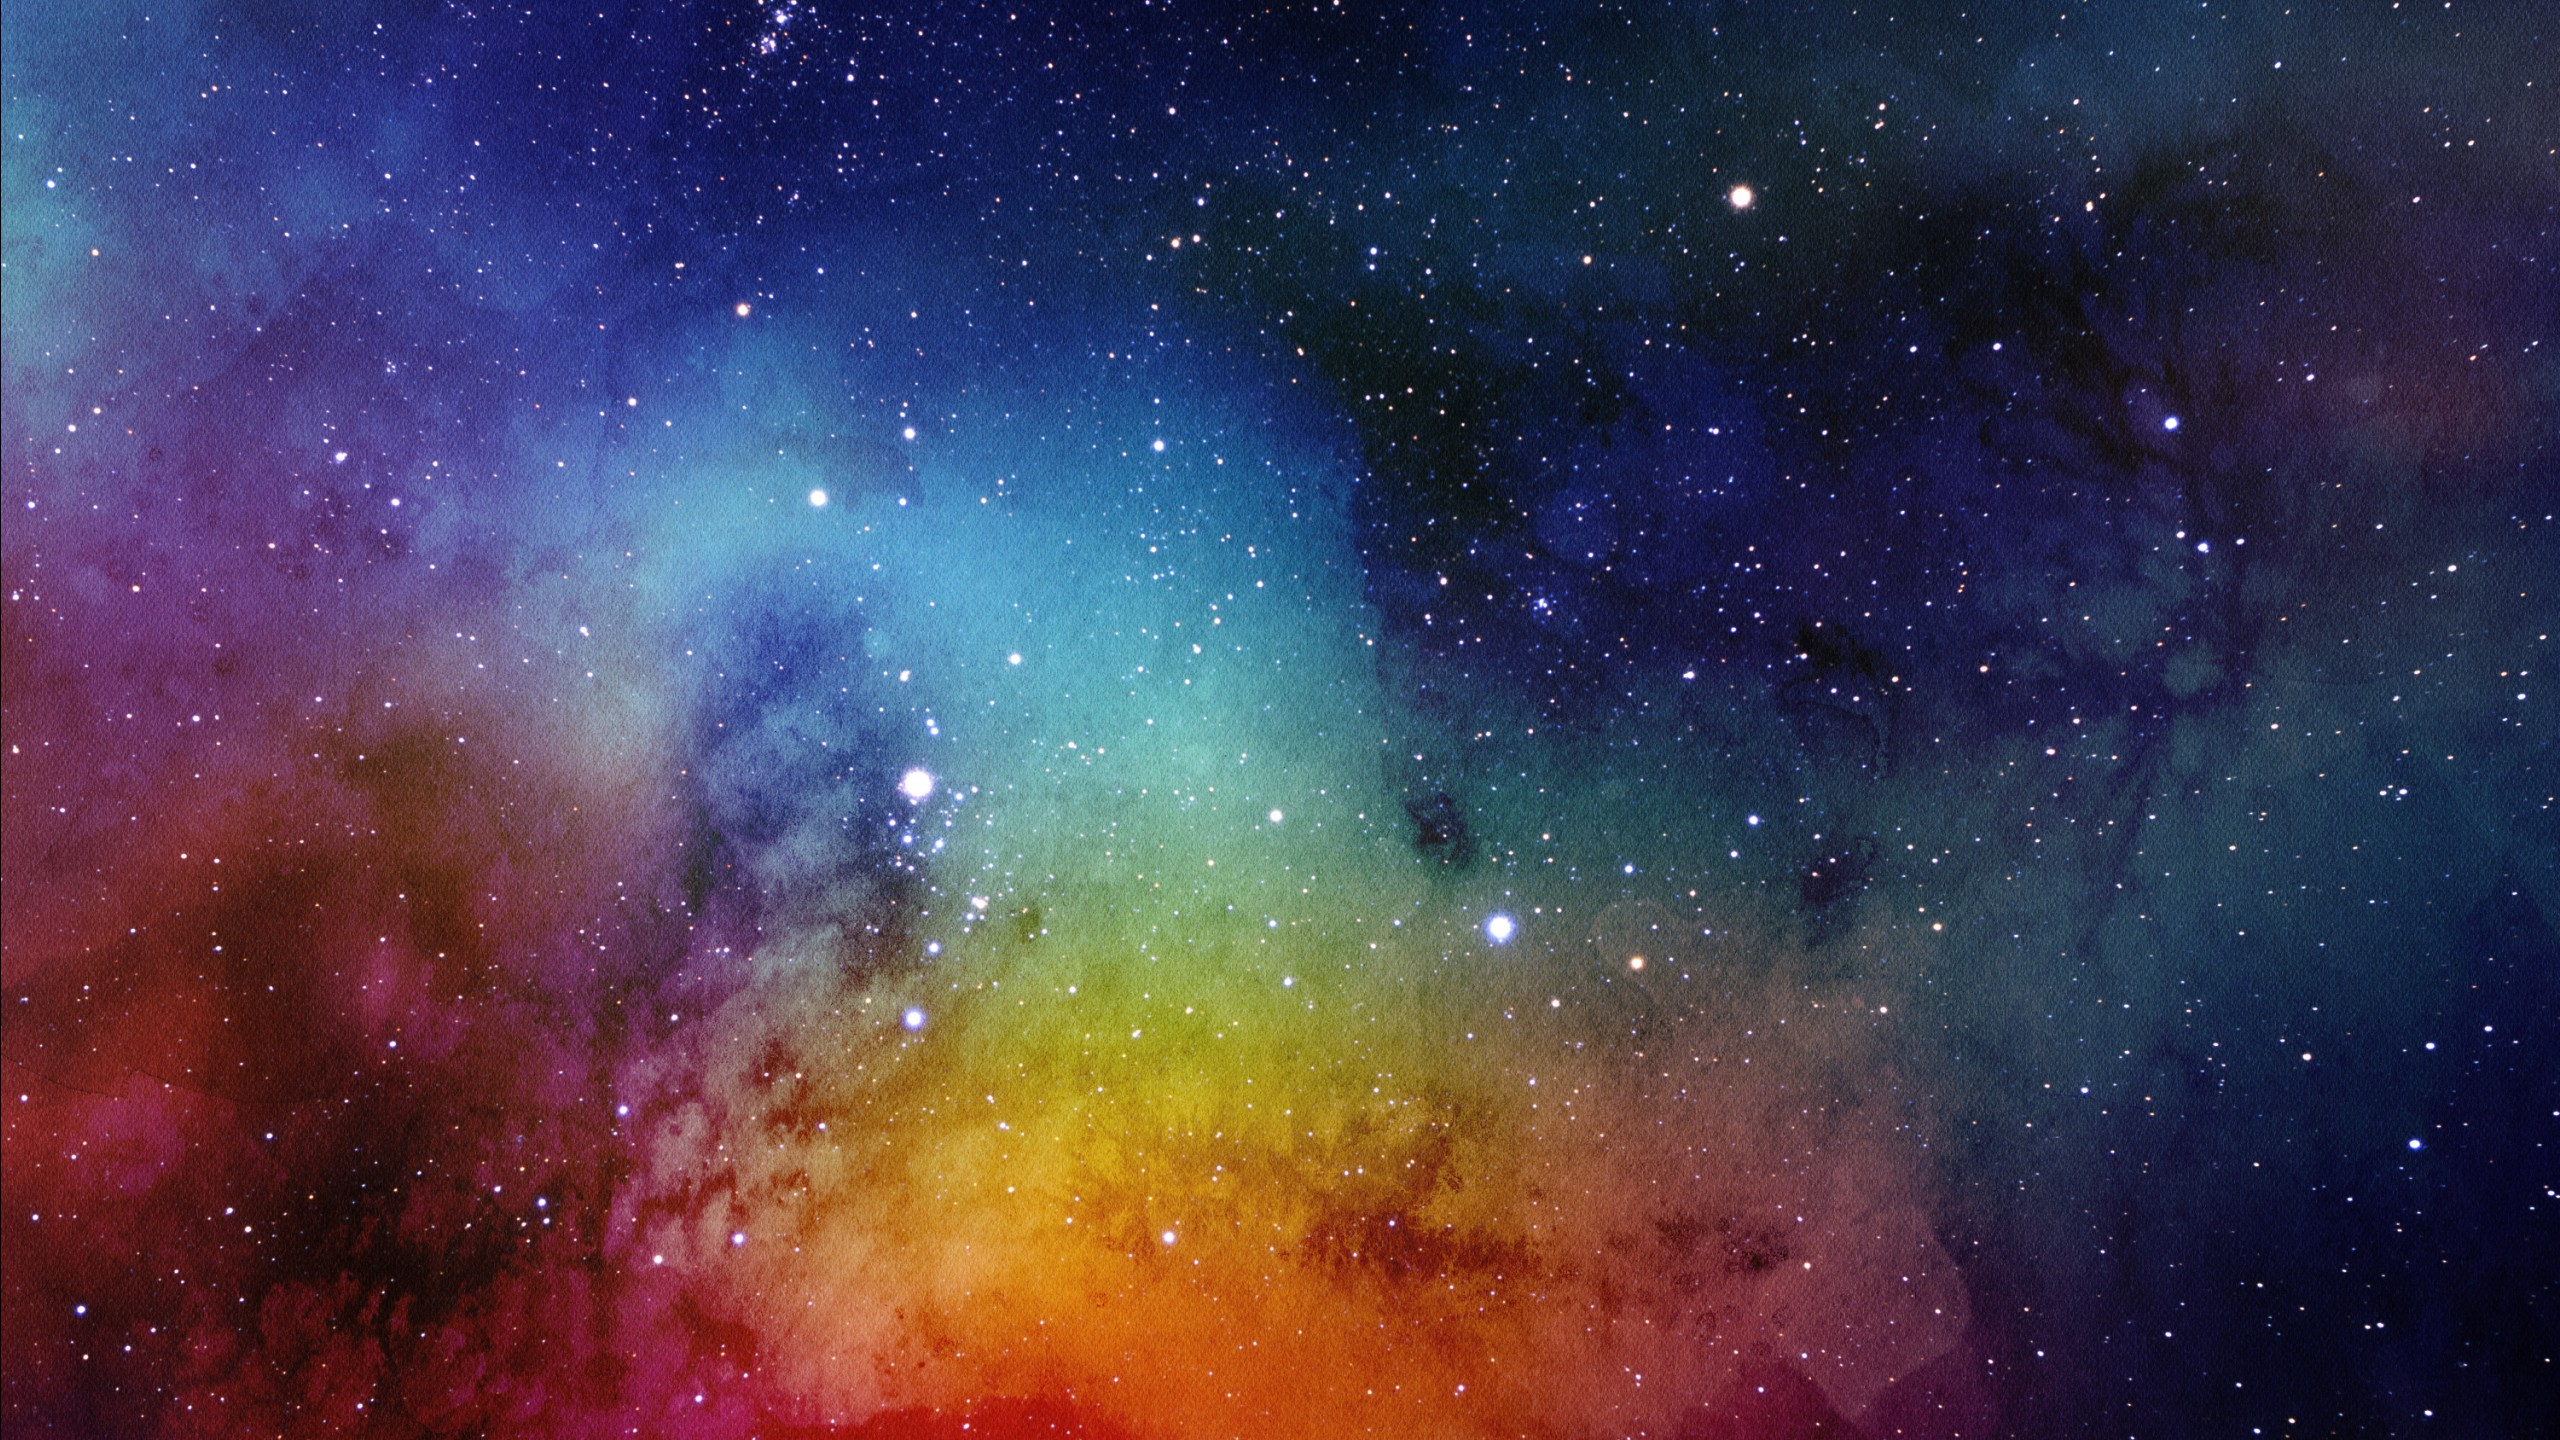 Iphone 7 Water Wallpaper Spacescape Watercolor Painting Wallpapers Hd Wallpapers